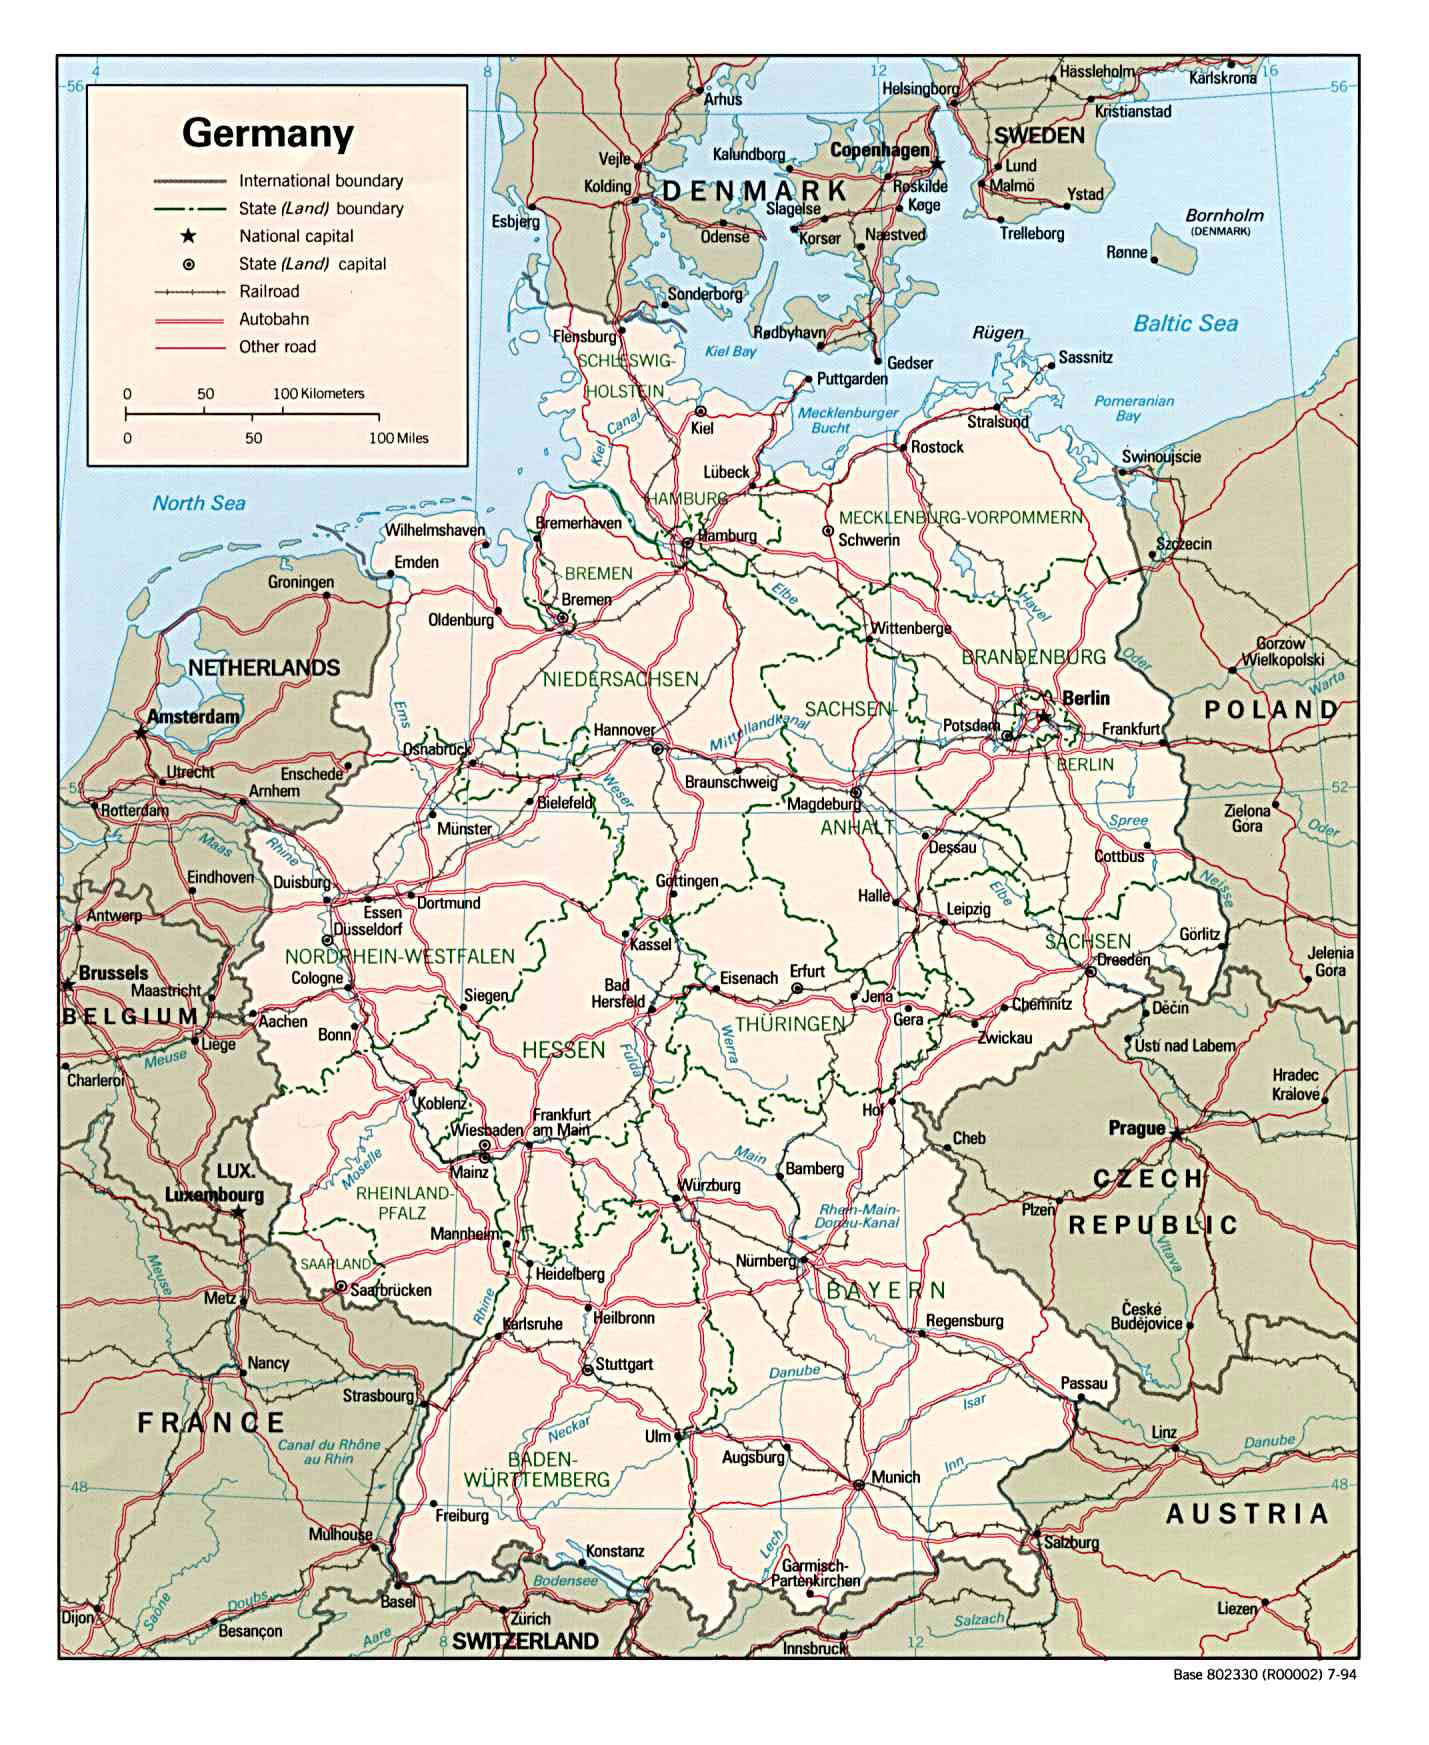 Detailed Map Of Germany.Detailed Administrative And Road Map Of Germany Germany Detailed